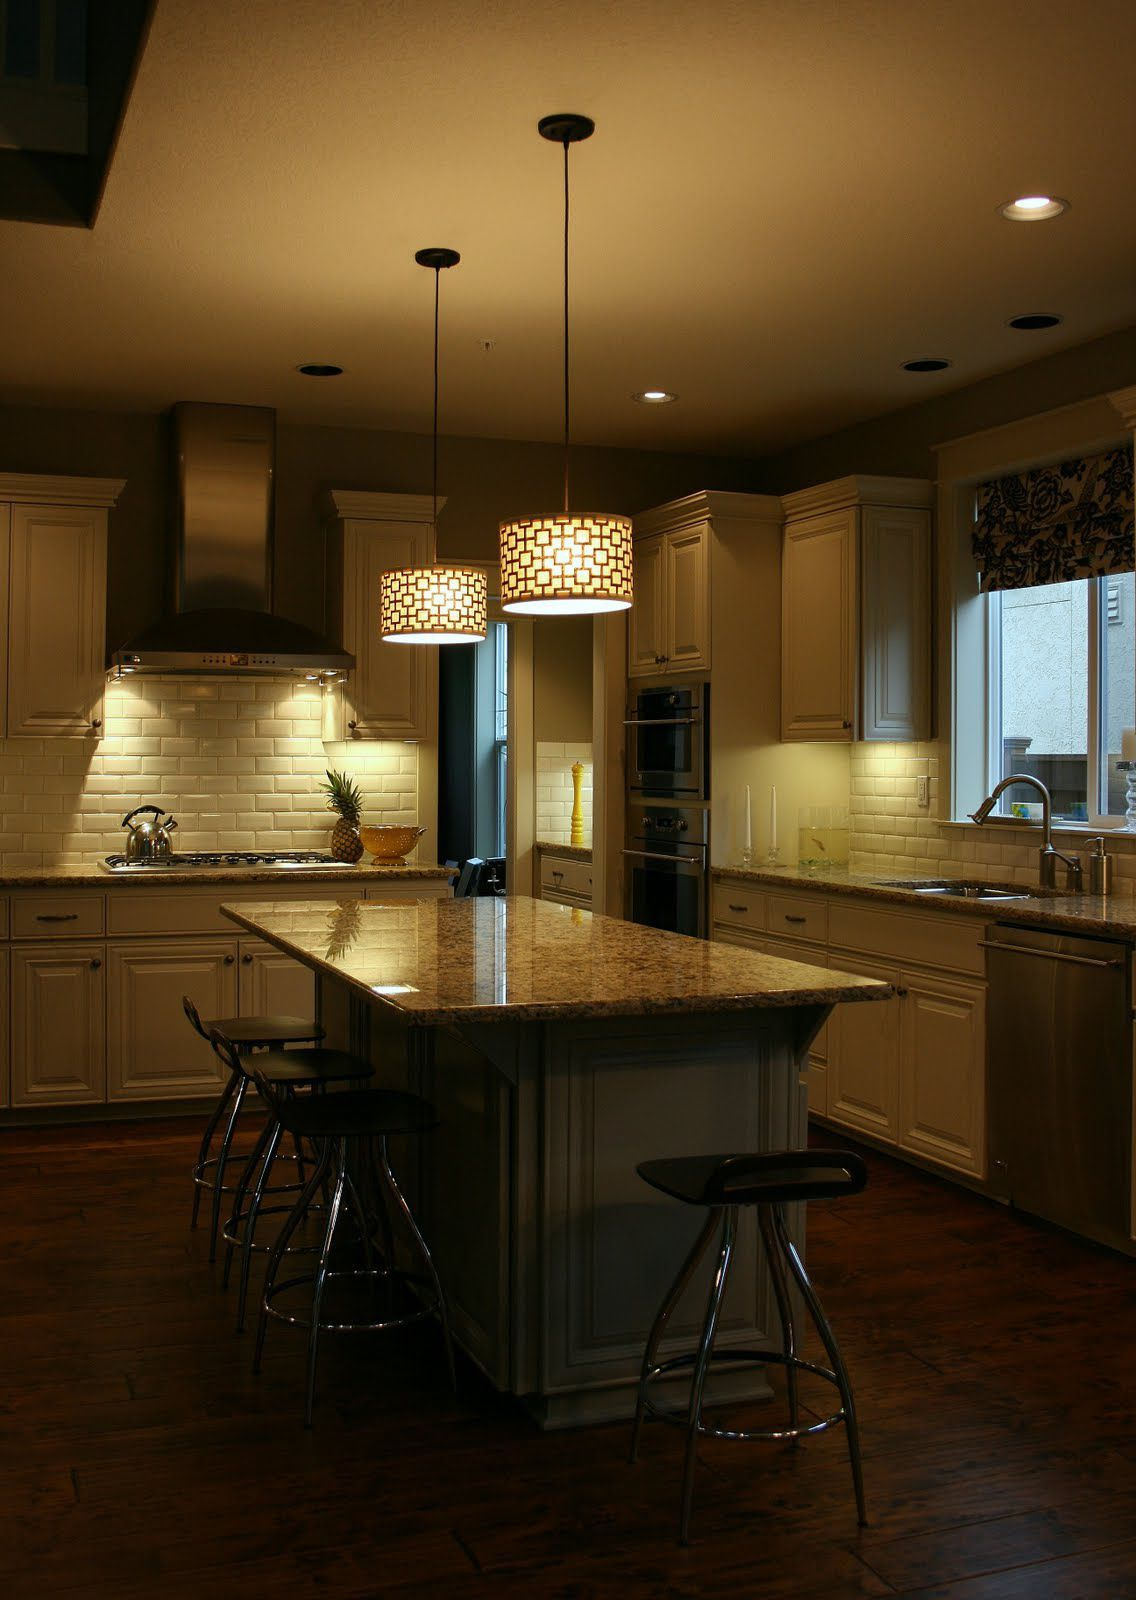 77 Quoizel Under Cabinet Lighting Corner Kitchen Cupboard Ideas Check More At Http